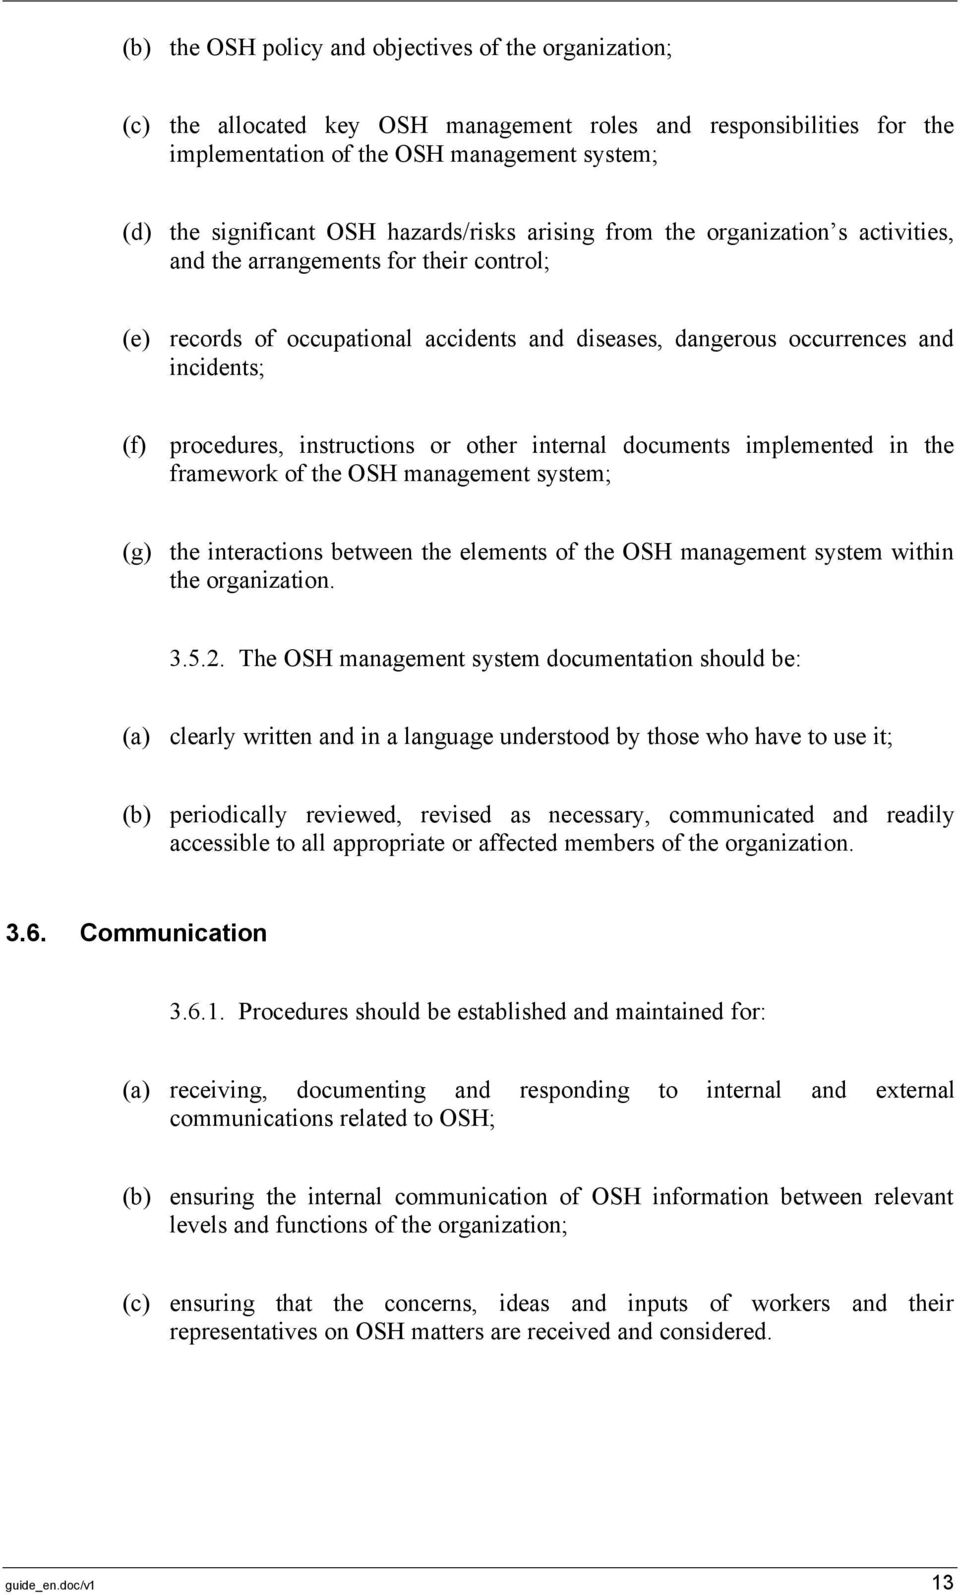 procedures, instructions or other internal documents implemented in the framework of the OSH management system; (g) the interactions between the elements of the OSH management system within the